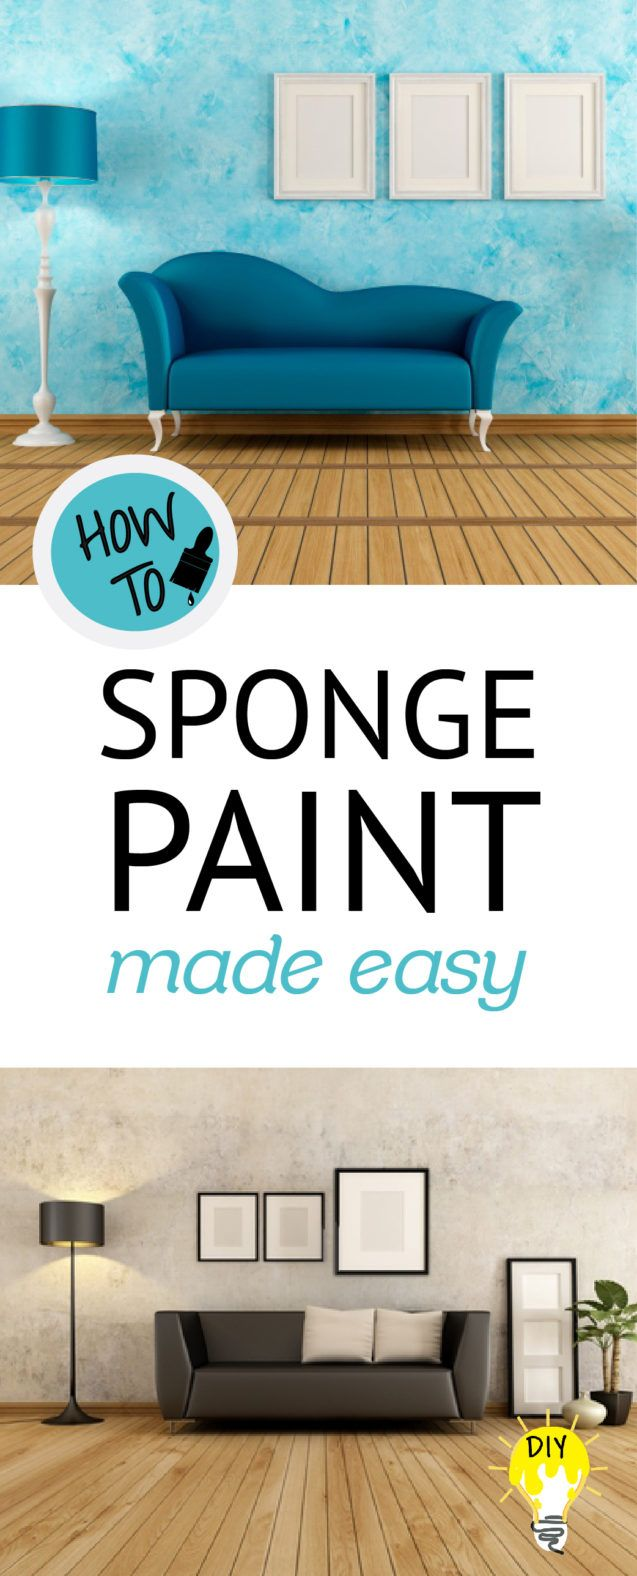 Sponge painting is easy and beautiful. It's requires no special tools, no expensive equipment, and no difficult process. Here's how it goes...